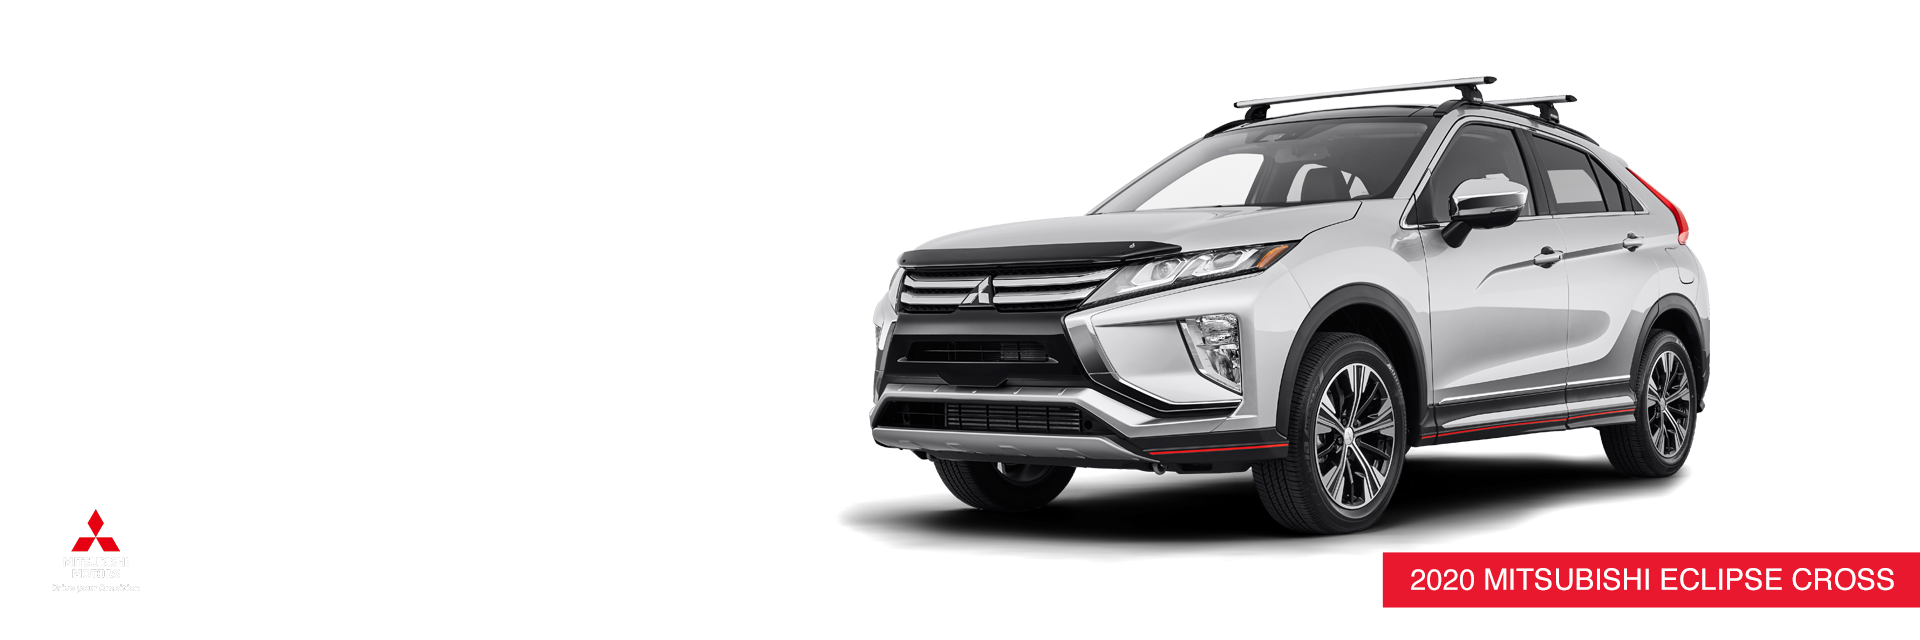 Atzenhoffer-Marquee-Eclipse Cross.png